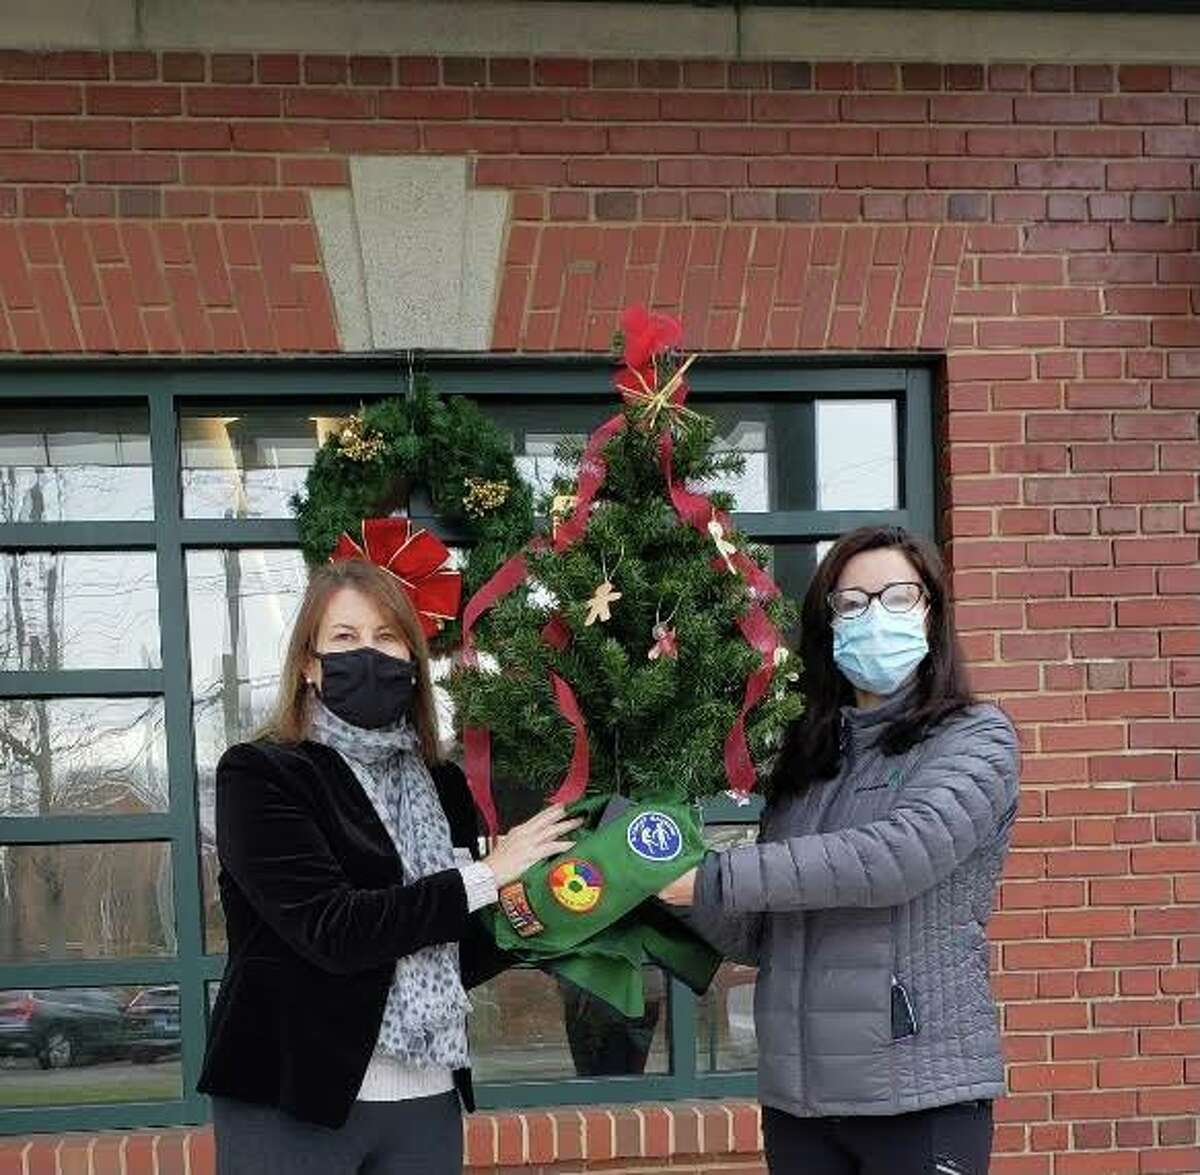 Anne Murdock, River House's development director, left, accepts a tree decorated by Greenwich Girl Scouts from Greenwich Girl Scouts co-Service Unit Manager Kim Sushon, right.